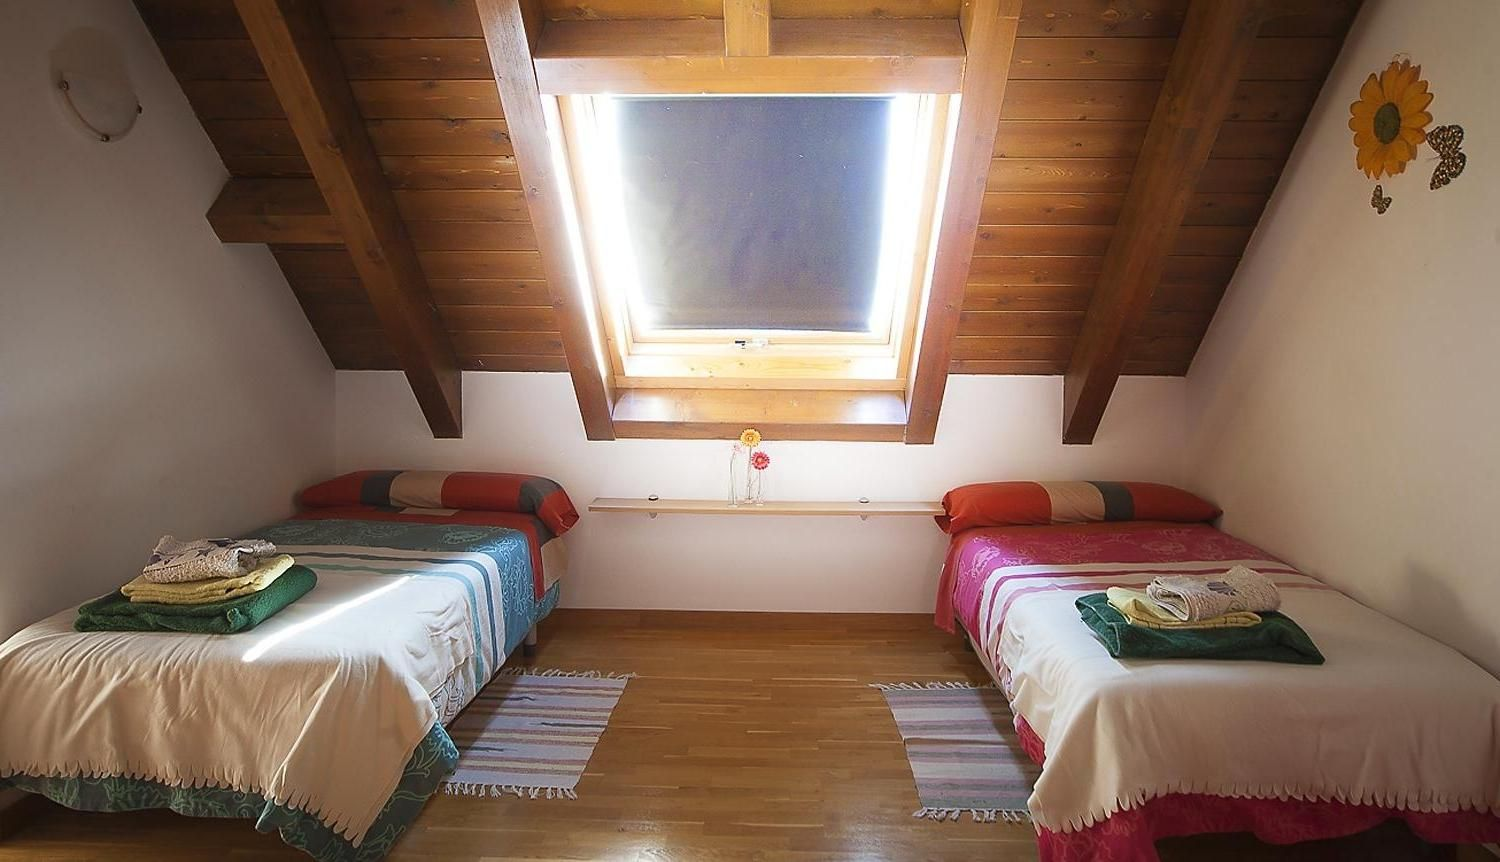 Interesting Small Attic Bed Room Idea With Wooden Sloping Design - Customized closet designs small rooms sloped roofs